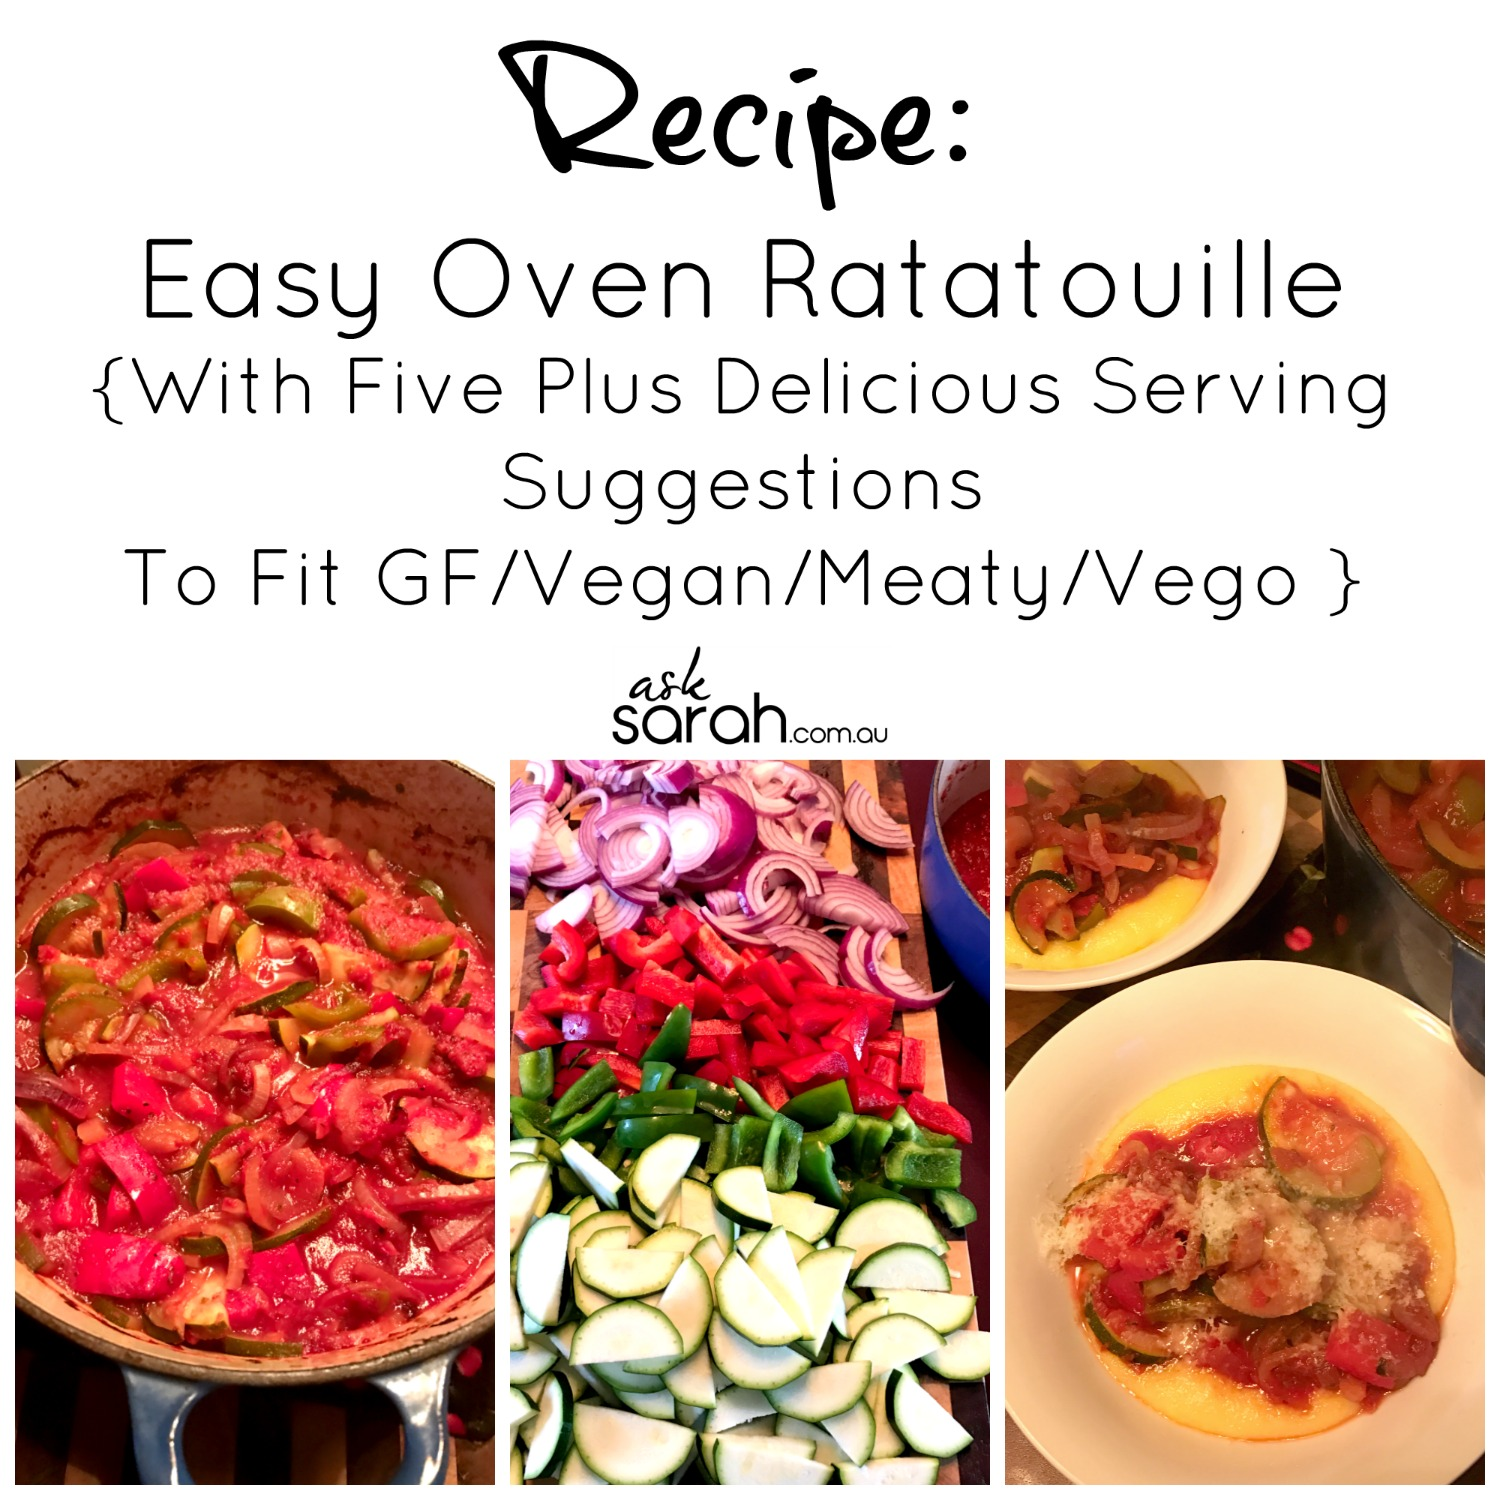 Recipe: Easy Oven Ratatouille {With Five Plus Delicious Serving Suggestions Fit GF/Vegan/Meaty/Vego }